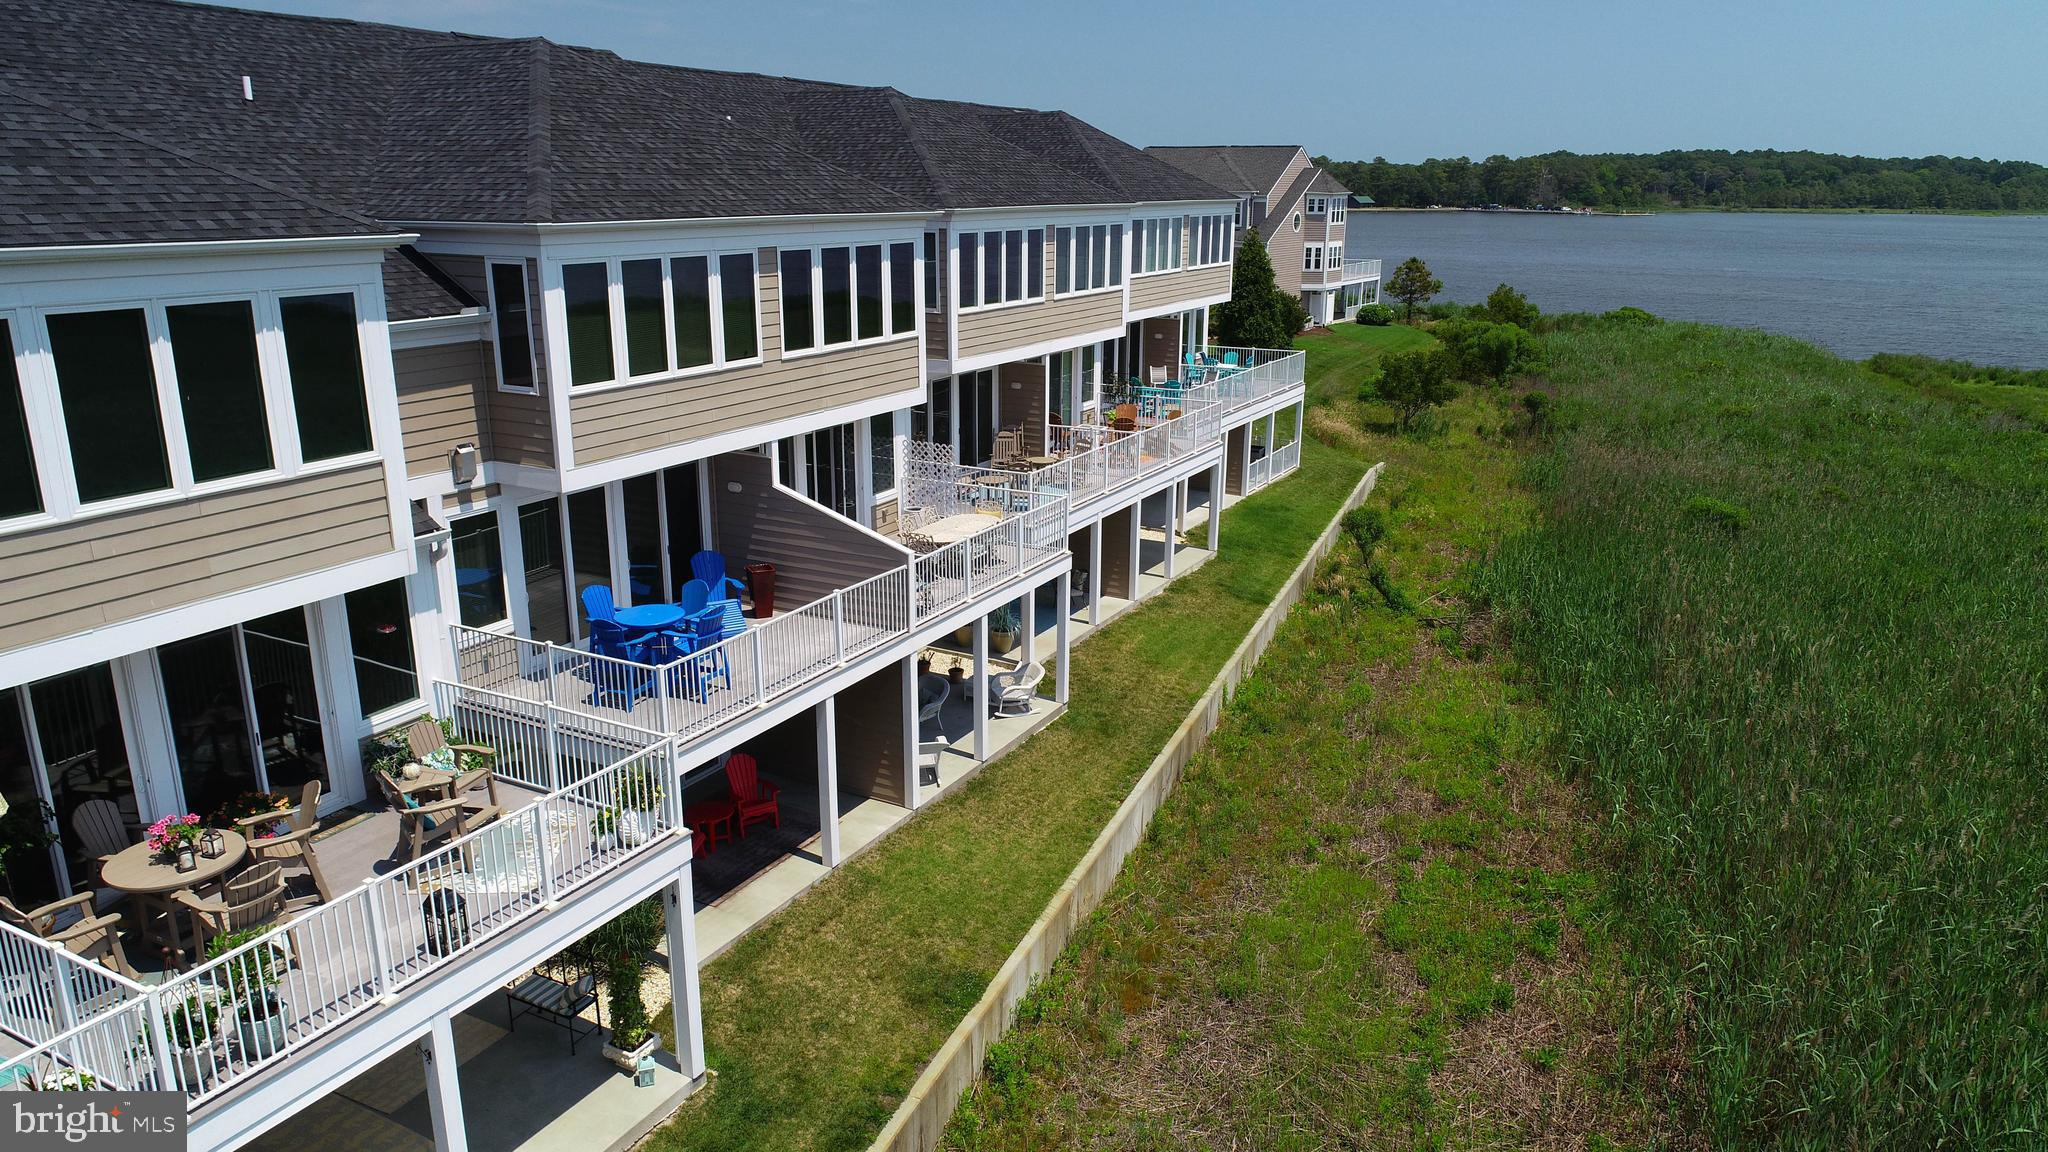 A RARE FIND...GENERATION III, POPULAR COURT FLOORPLAN...the newest building in Bayville Shores. The home features twin master suites (1st and 3rd floors), an en suite guest bedroom on the 3rd floor, a 12' x 17' 2nd floor sun deck, a 12' x 17' covered lanai, Florida room, great room, dining area, gourmet kitchen with granite countertops and breakfast bar and a full array of stainless appliances, undermounted double stainless sink, gas fireplace and media center, 9' ceilings throughout main living areas and 3rd floor master suite, 1st floor wet bar and refrigerator with granite countertops, 1st floor laundry area and one car garage. The home shows better than new and is being sold fully furnished and accessorized.